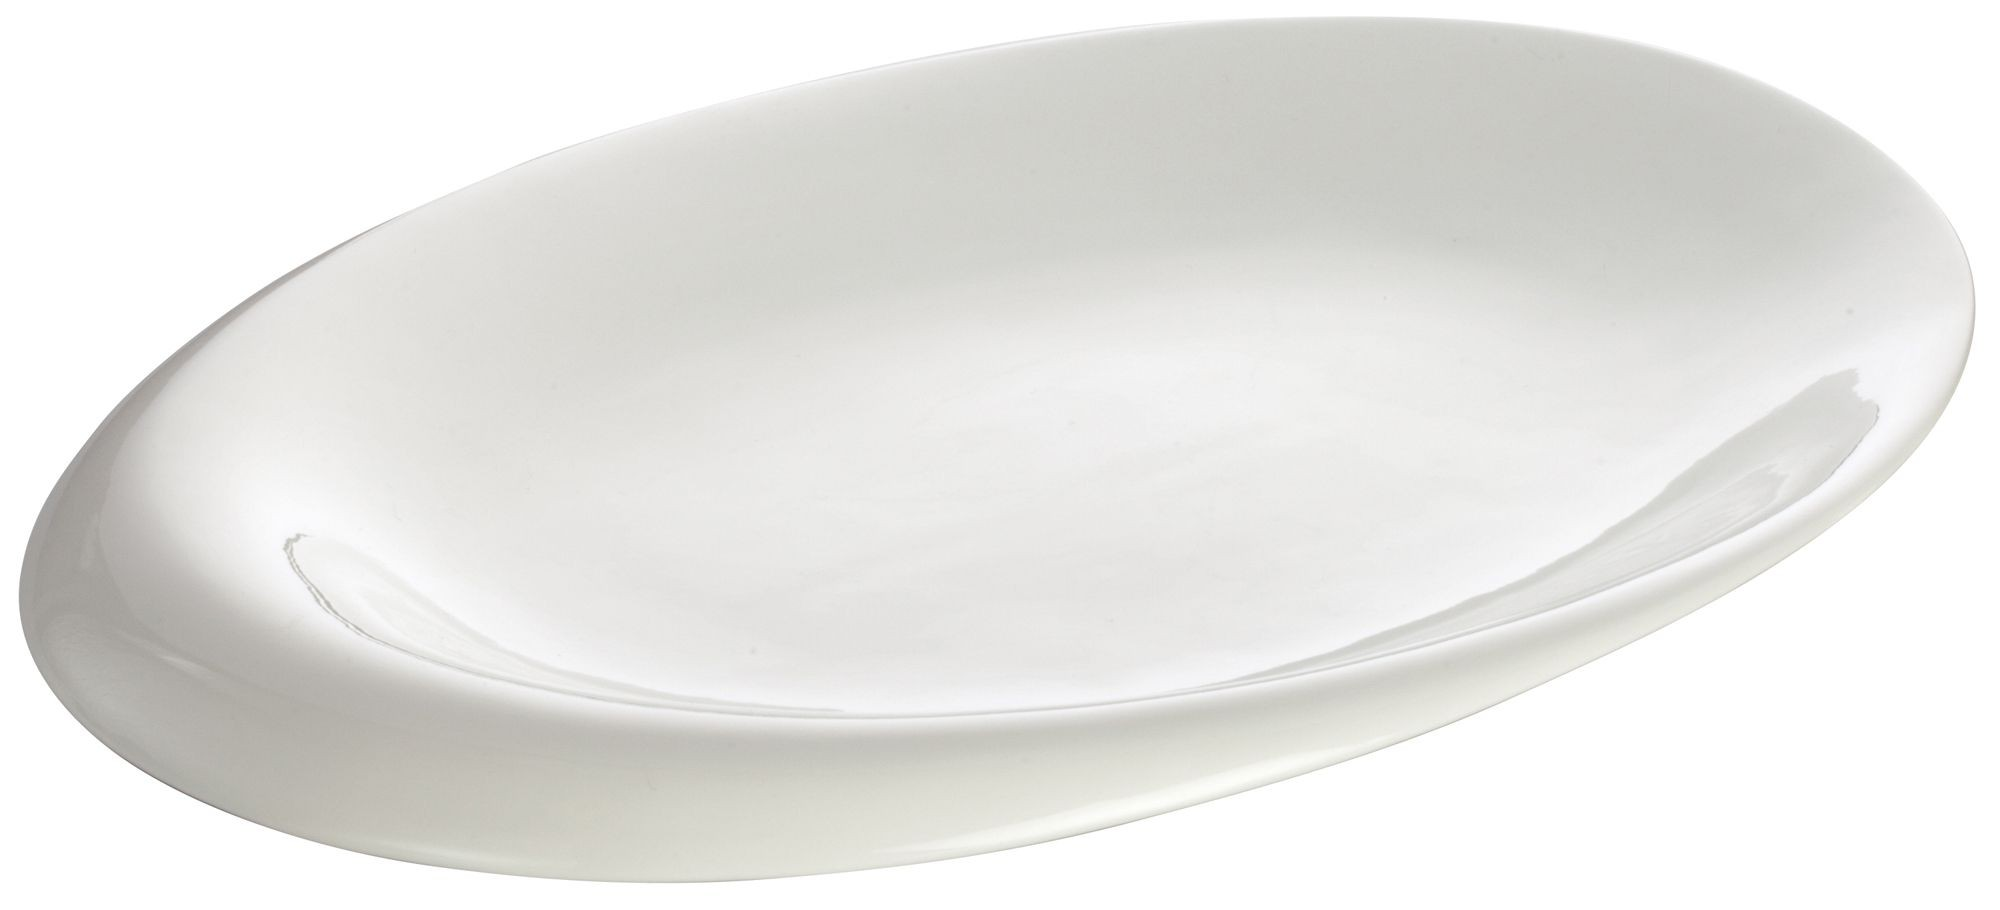 "Winco WDP004-213 Ocea Creamy White Porcelain Oval Bowl 18"" x 13-5/8"""